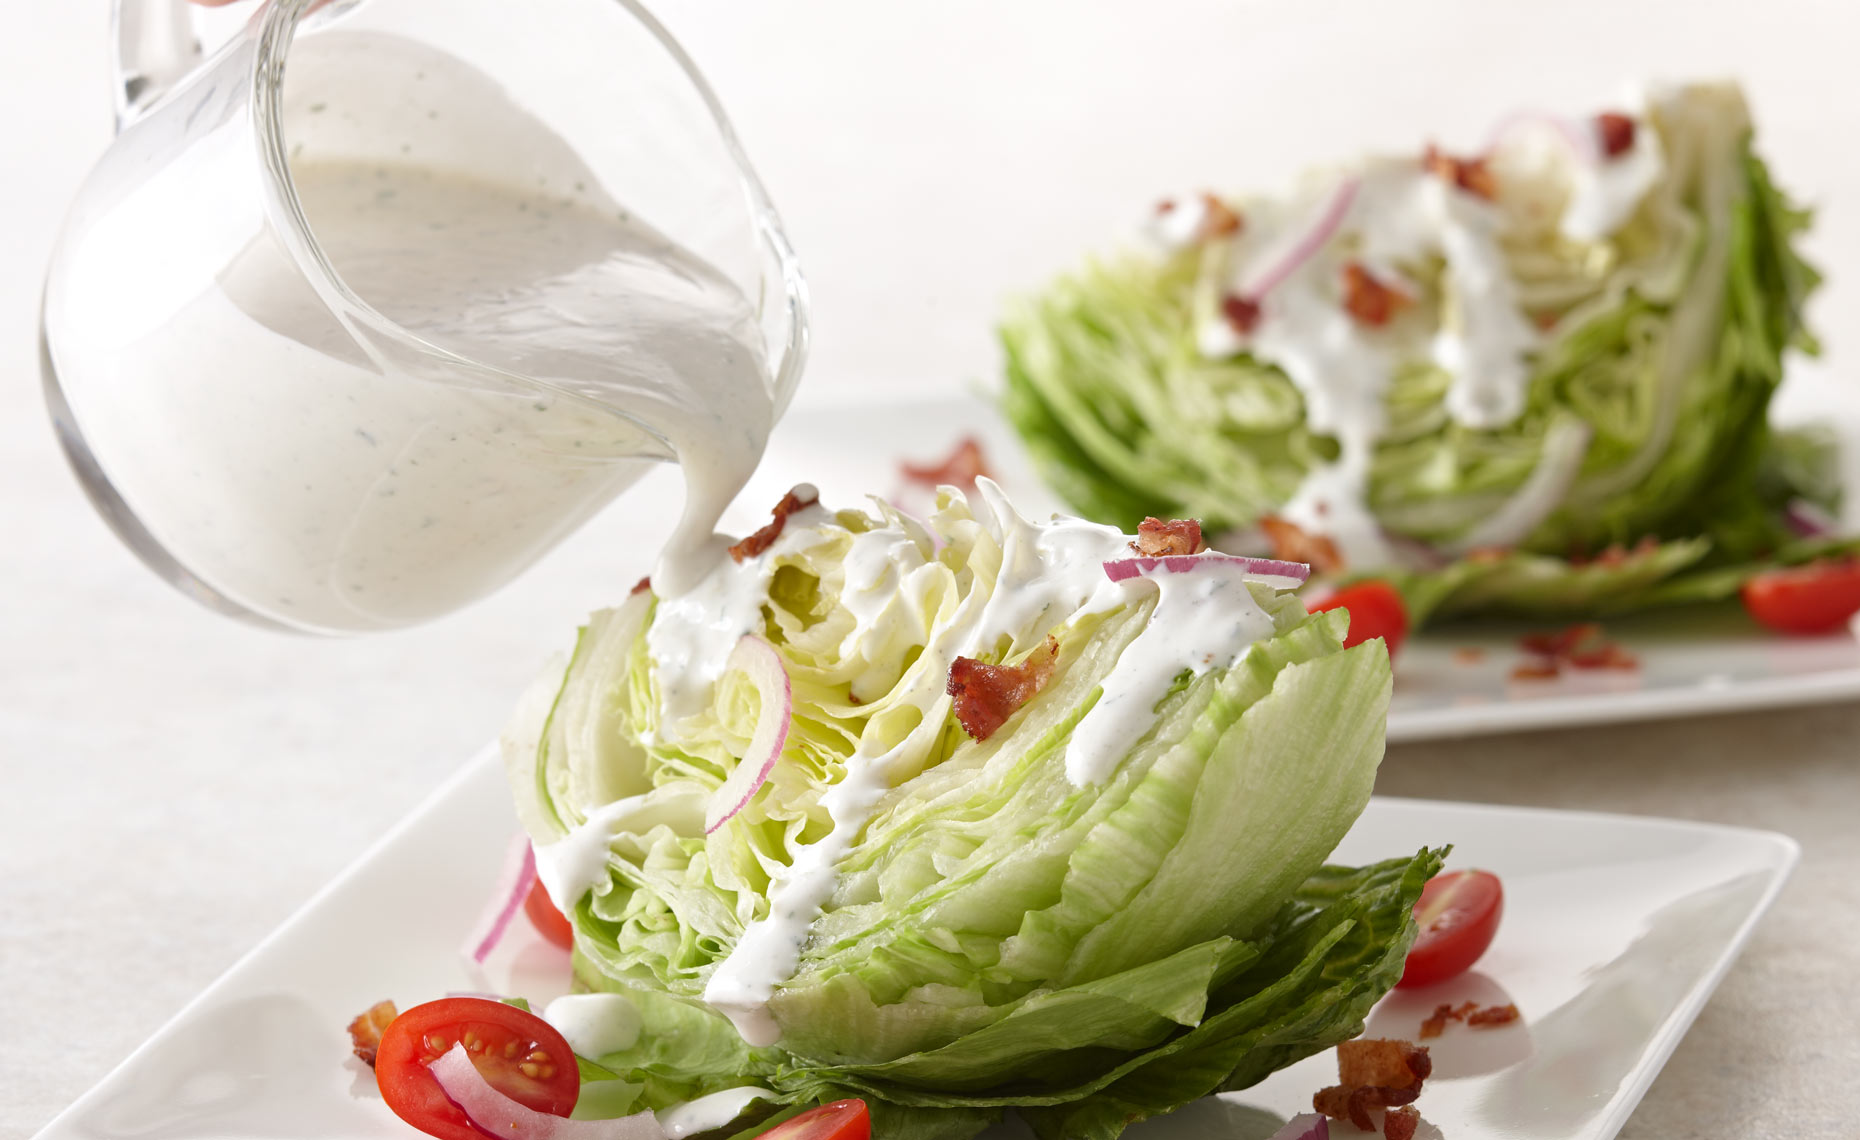 appetizers-fruits-vegetables-photographers-lettuce-dressing-10